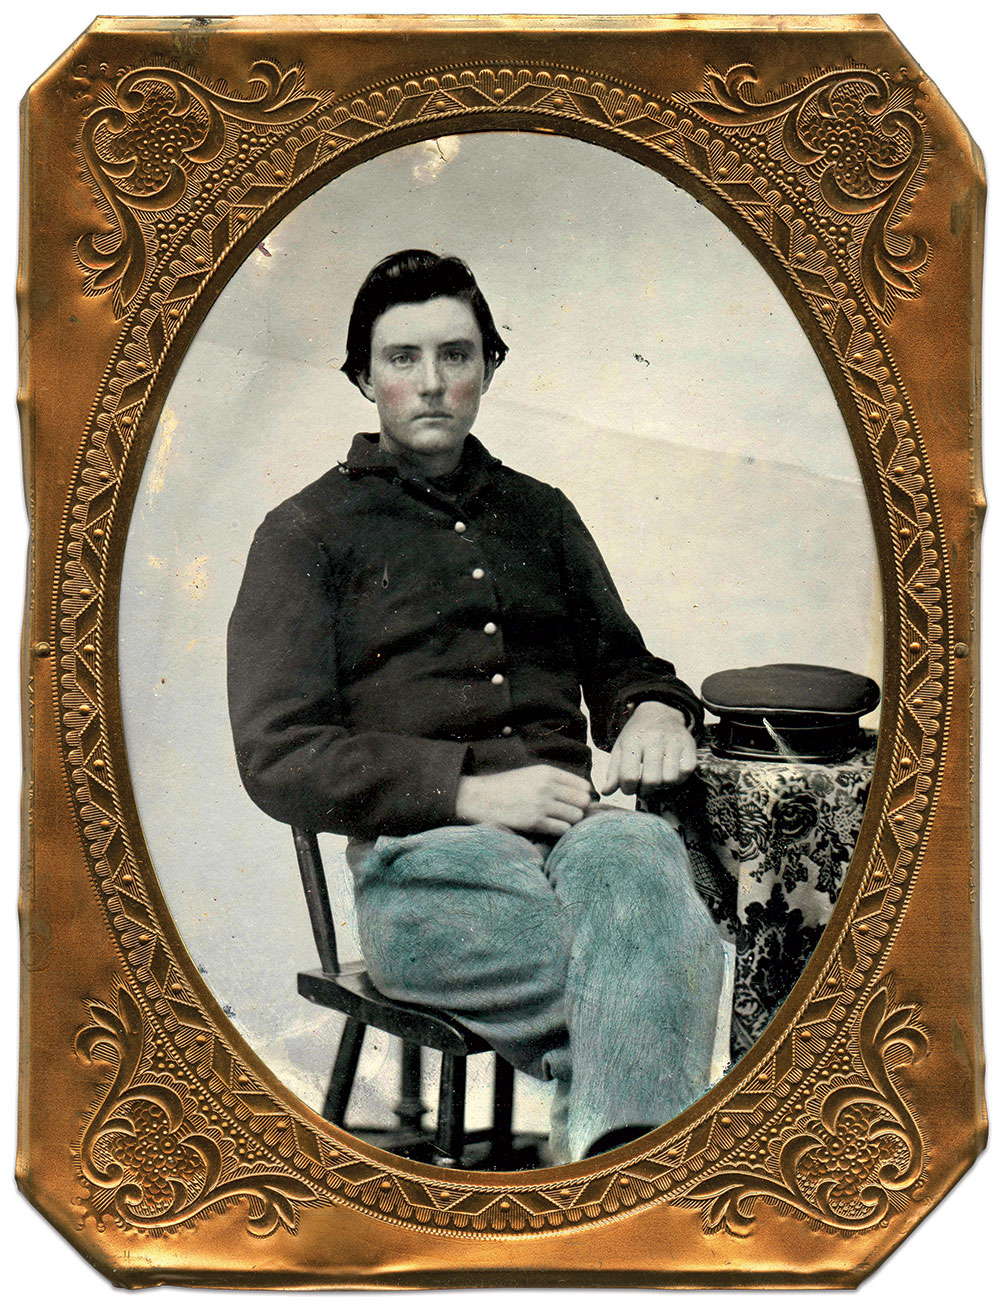 THE MMB CAP: Pvt. William R. Houts is pictured about 1863 with the Marine Brigade's distinctive Germanic wheel-hat with leather visor trimmed with a green band and white facing. Quarter-plate tintype by an unidentified photographer. Author's Collection.